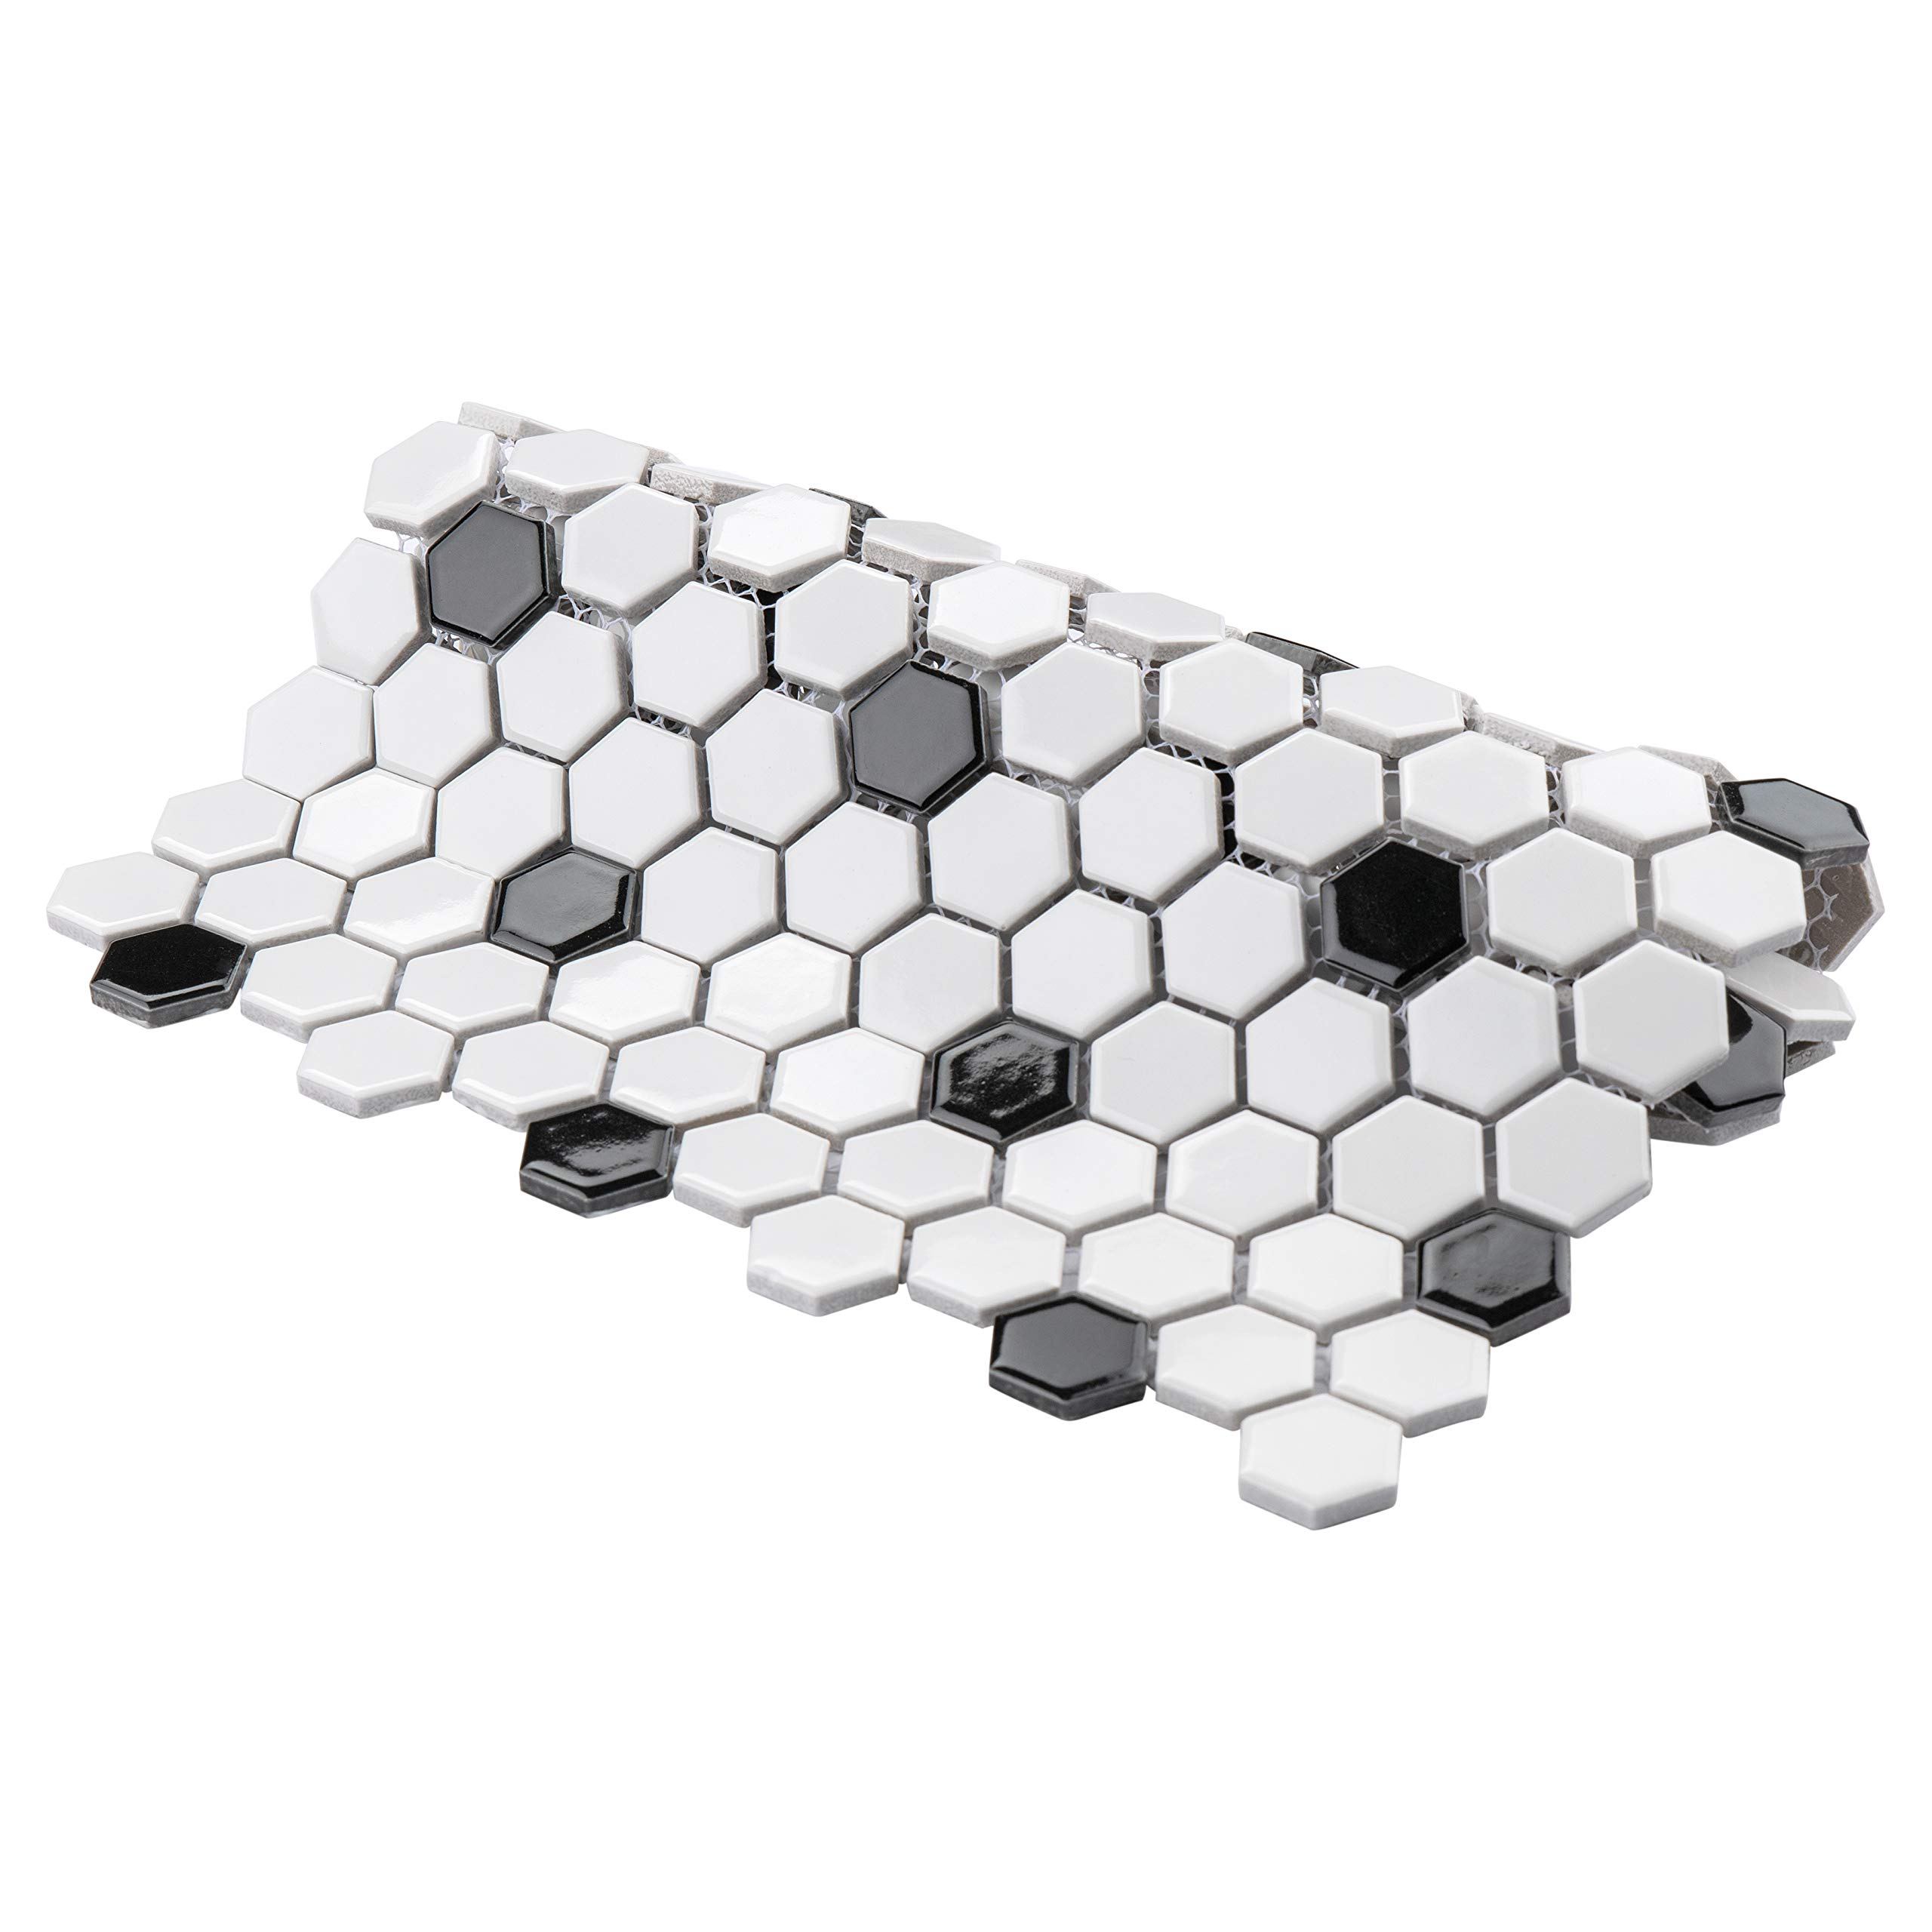 SomerTile FXLMHWBD Retro Hexagon Porcelain Mosaic Floor and Wall Tile, 10.25'' x 11.75'', White with Black Dot by SOMERTILE (Image #5)